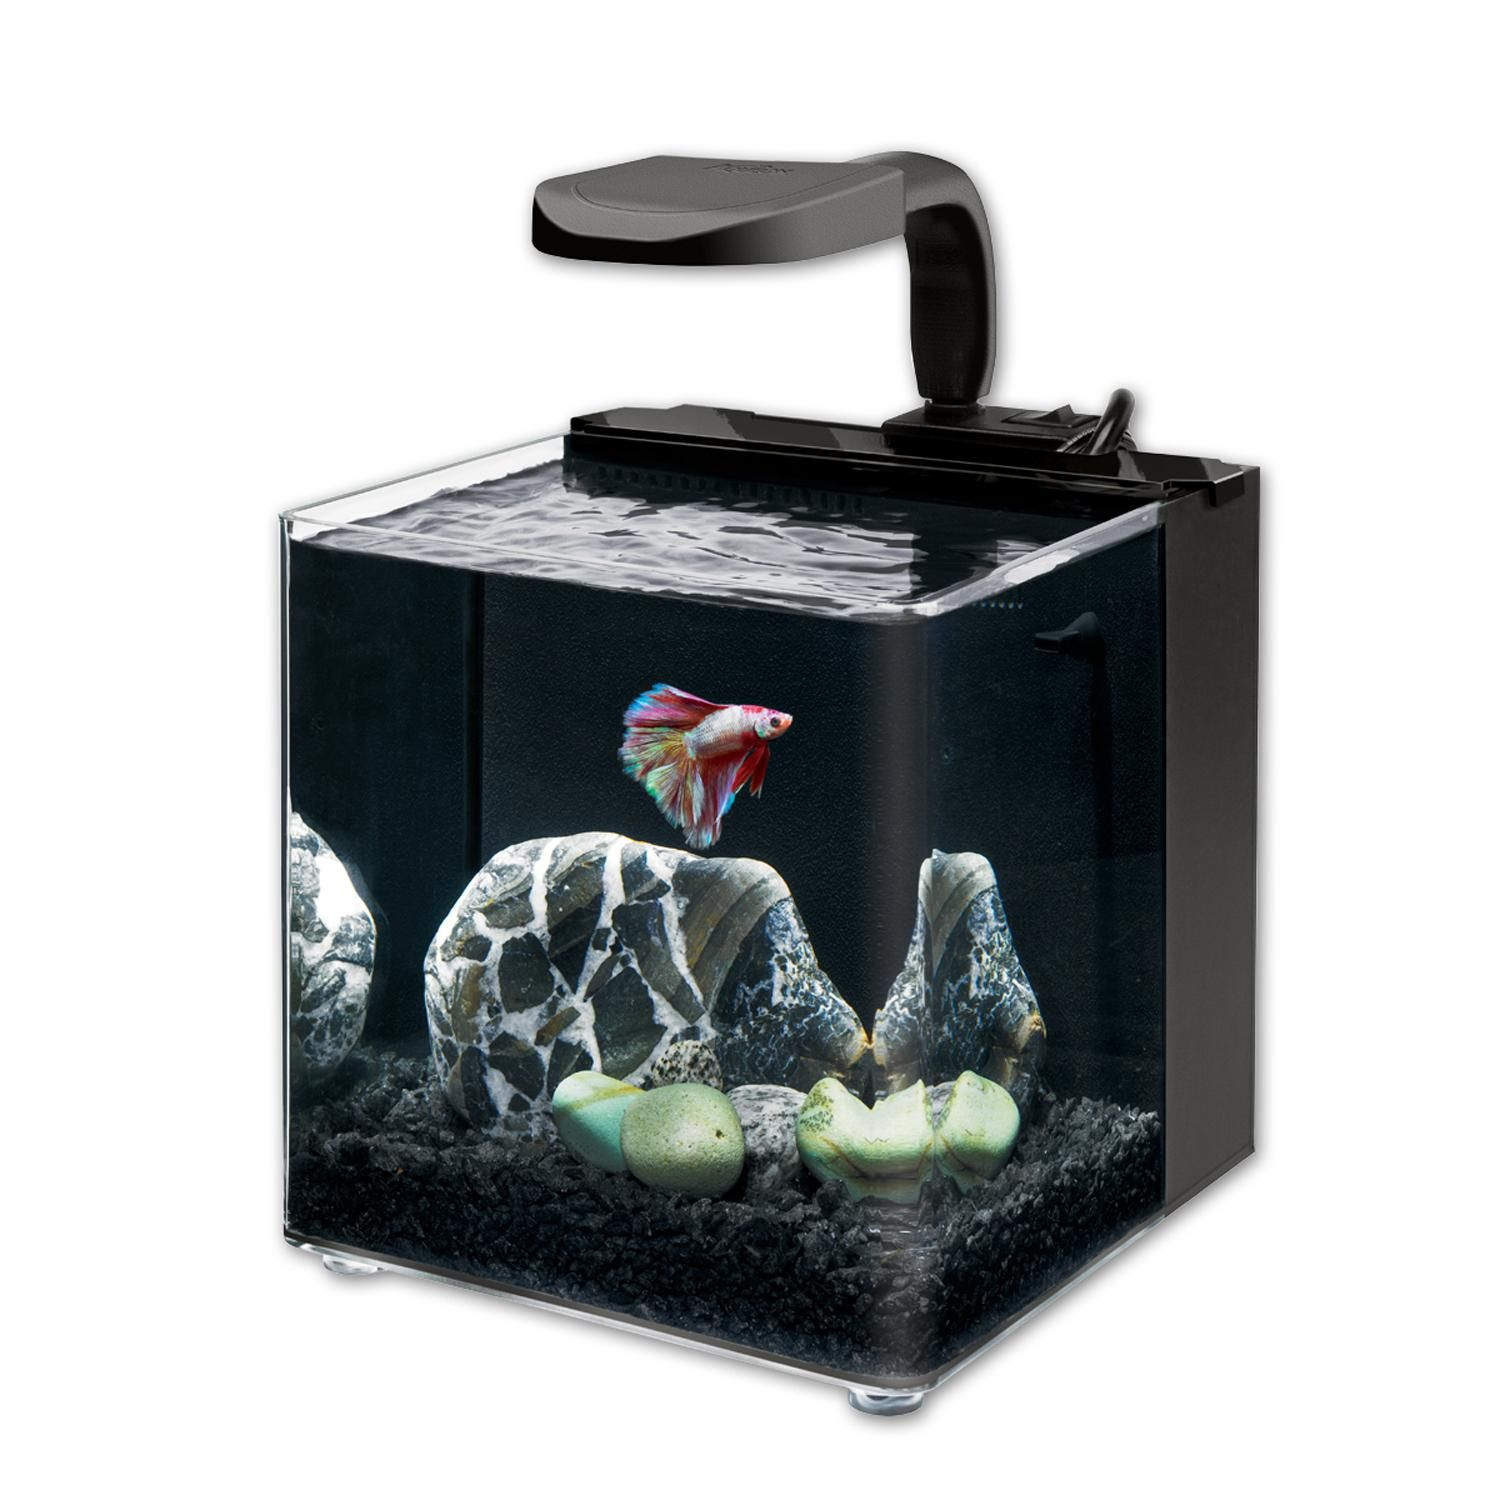 Aqueon evolve led aquarium kit comes in a variety of for Betta fish tanks petco